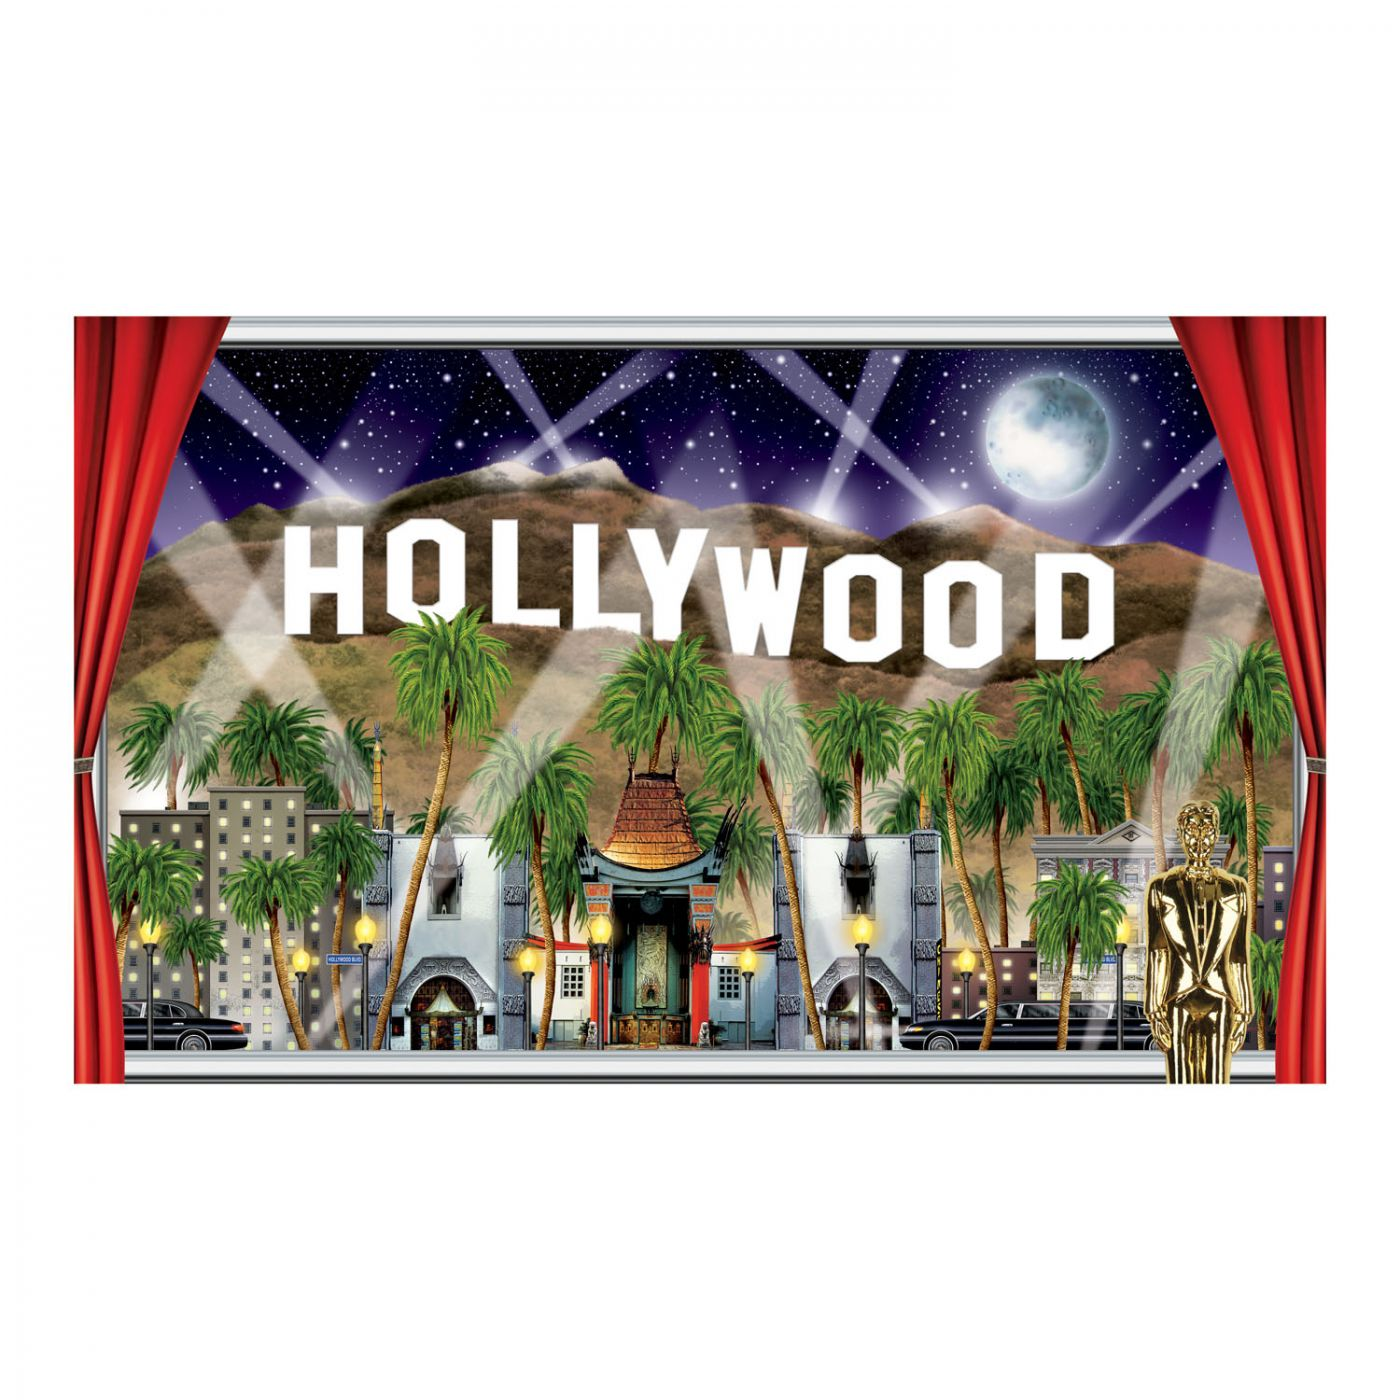 Hollywood Insta-View (6) image